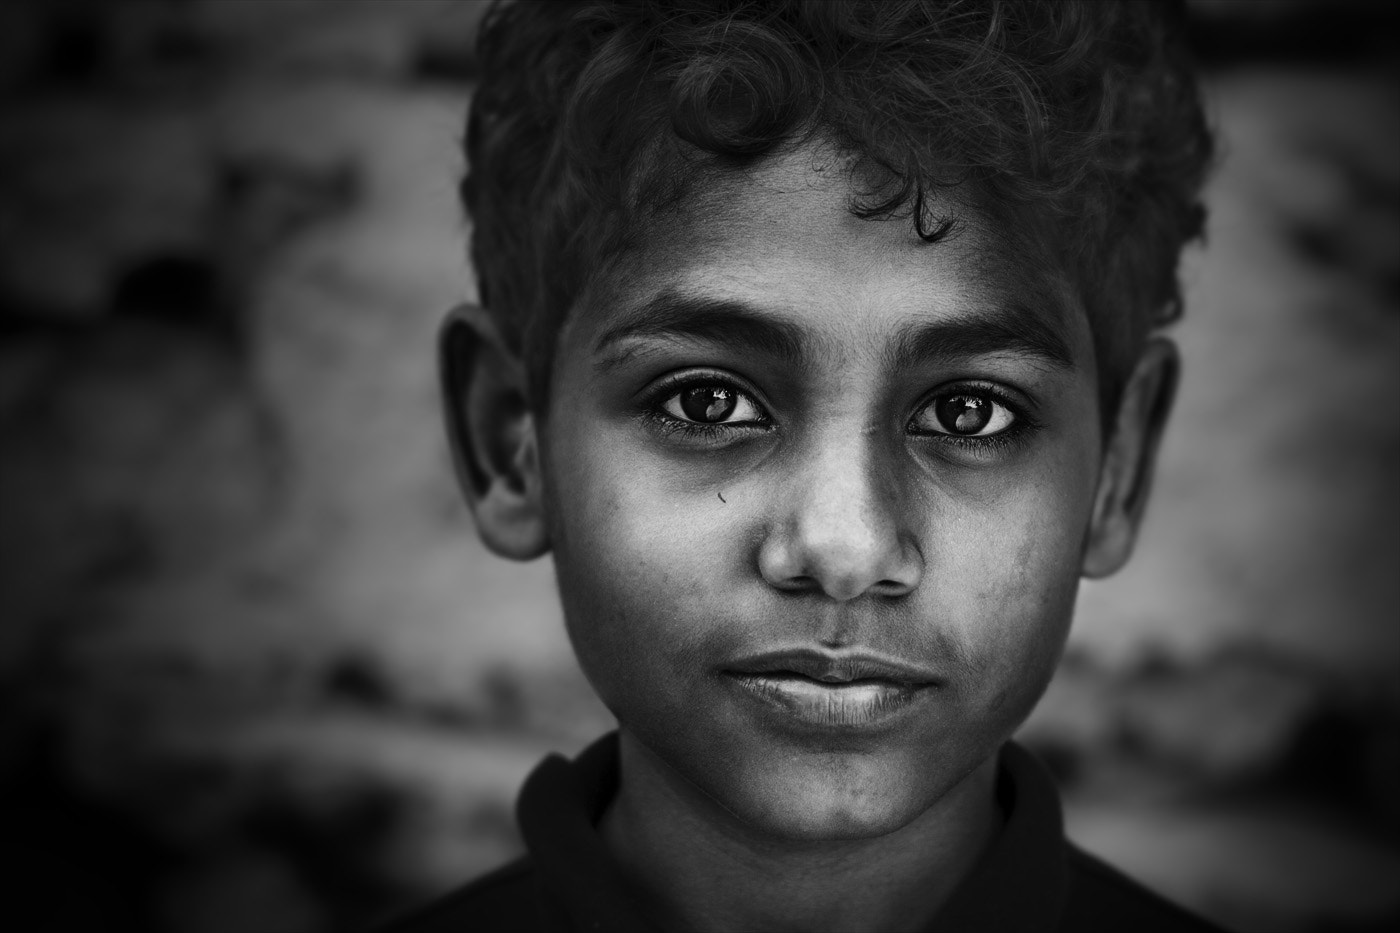 Photograph smile by Zuhair Ahmad on 500px